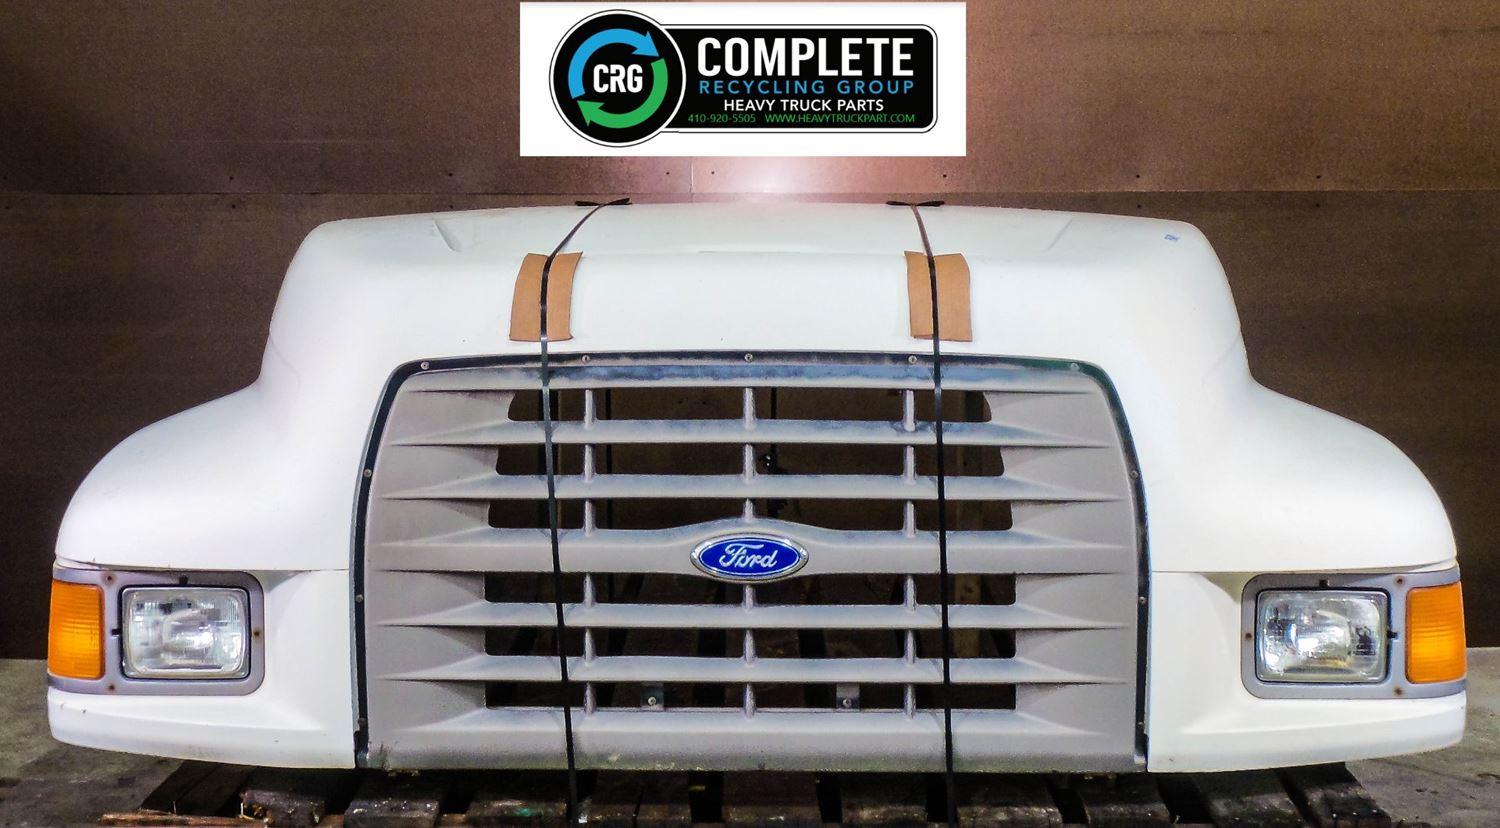 1995 FORD B800 HOOD TRUCK PARTS #680209